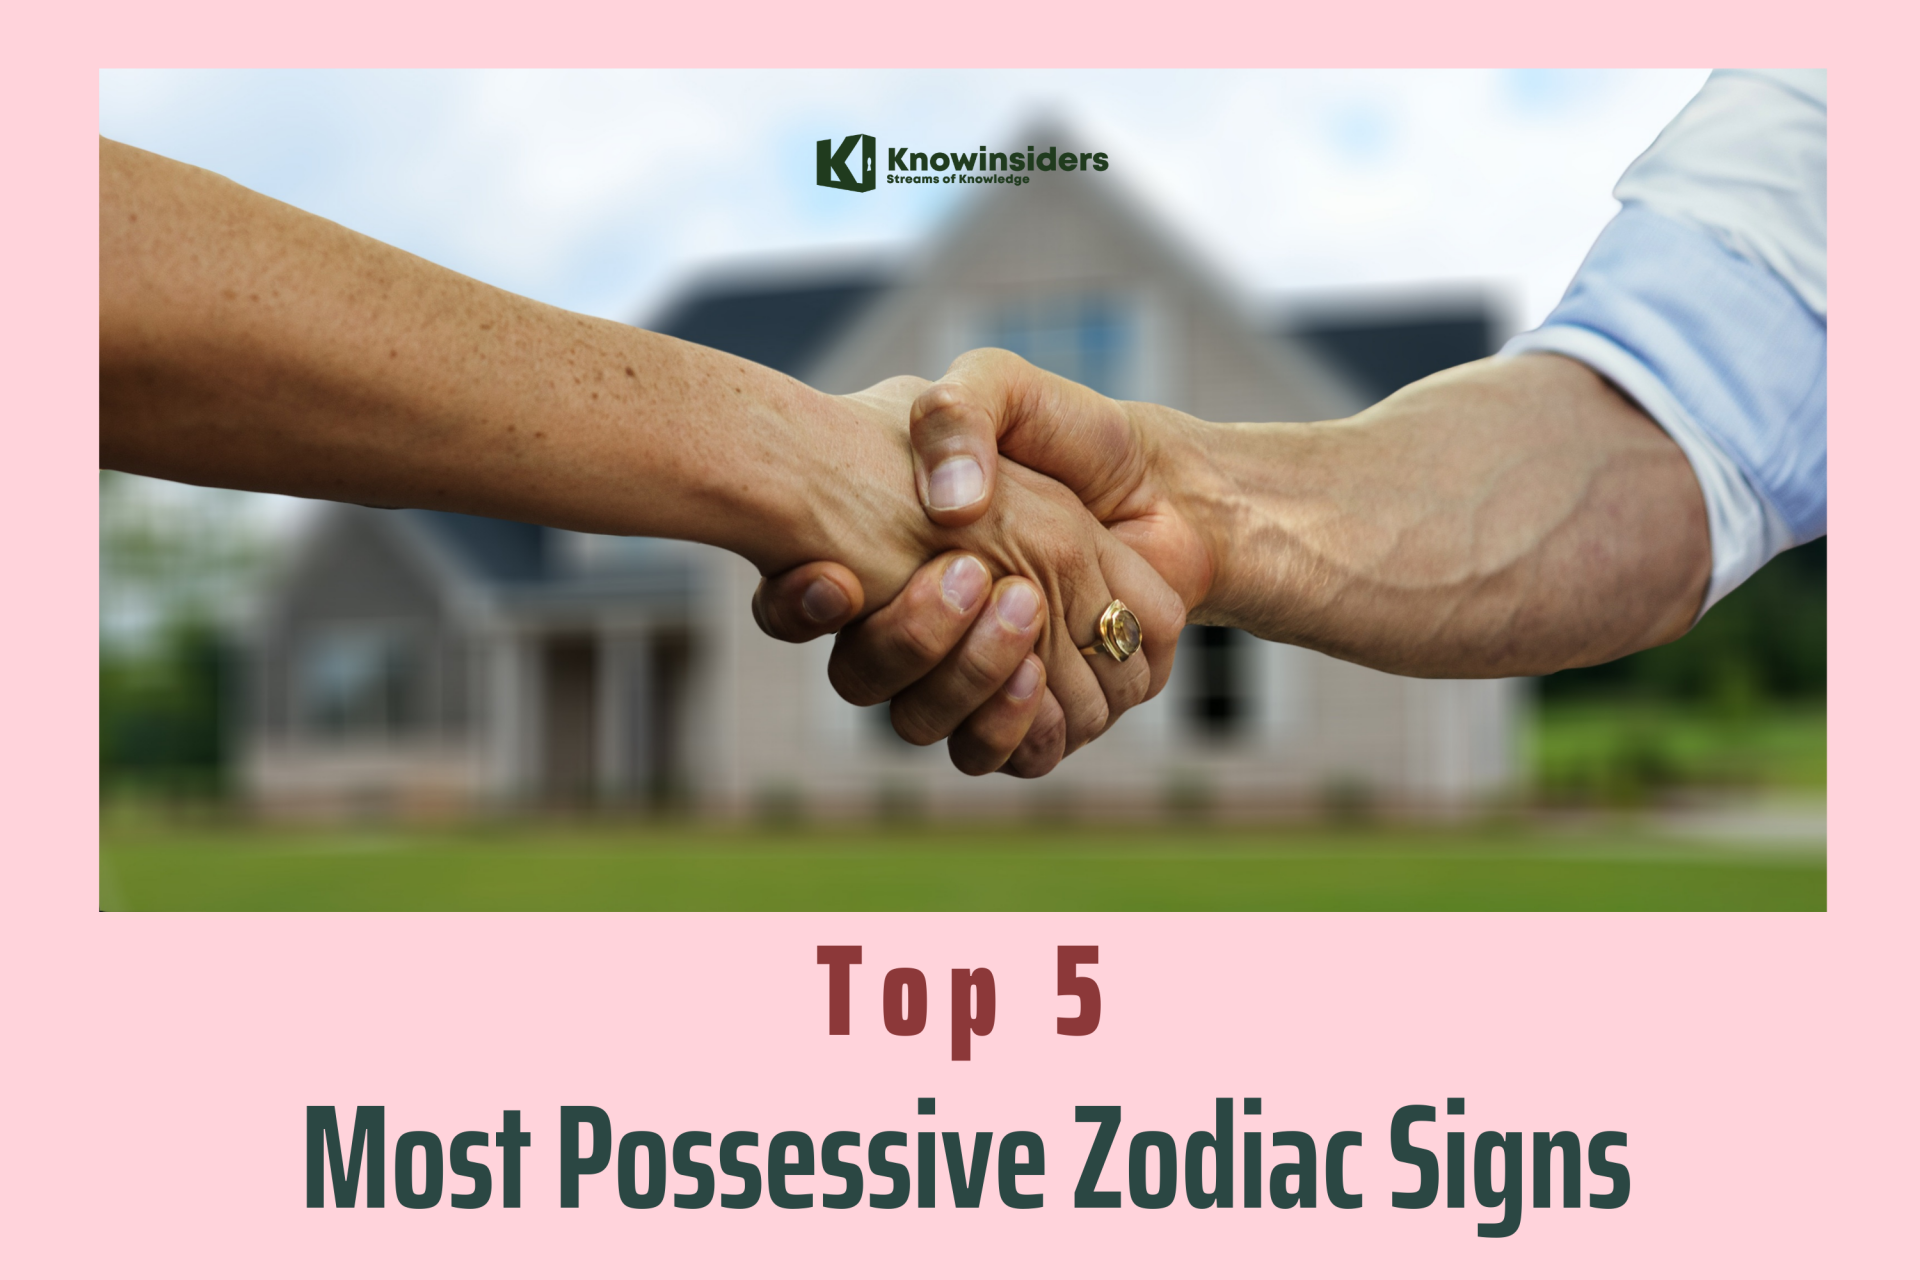 Top 5 Most Possessive Zodiac Signs - According to Astrology